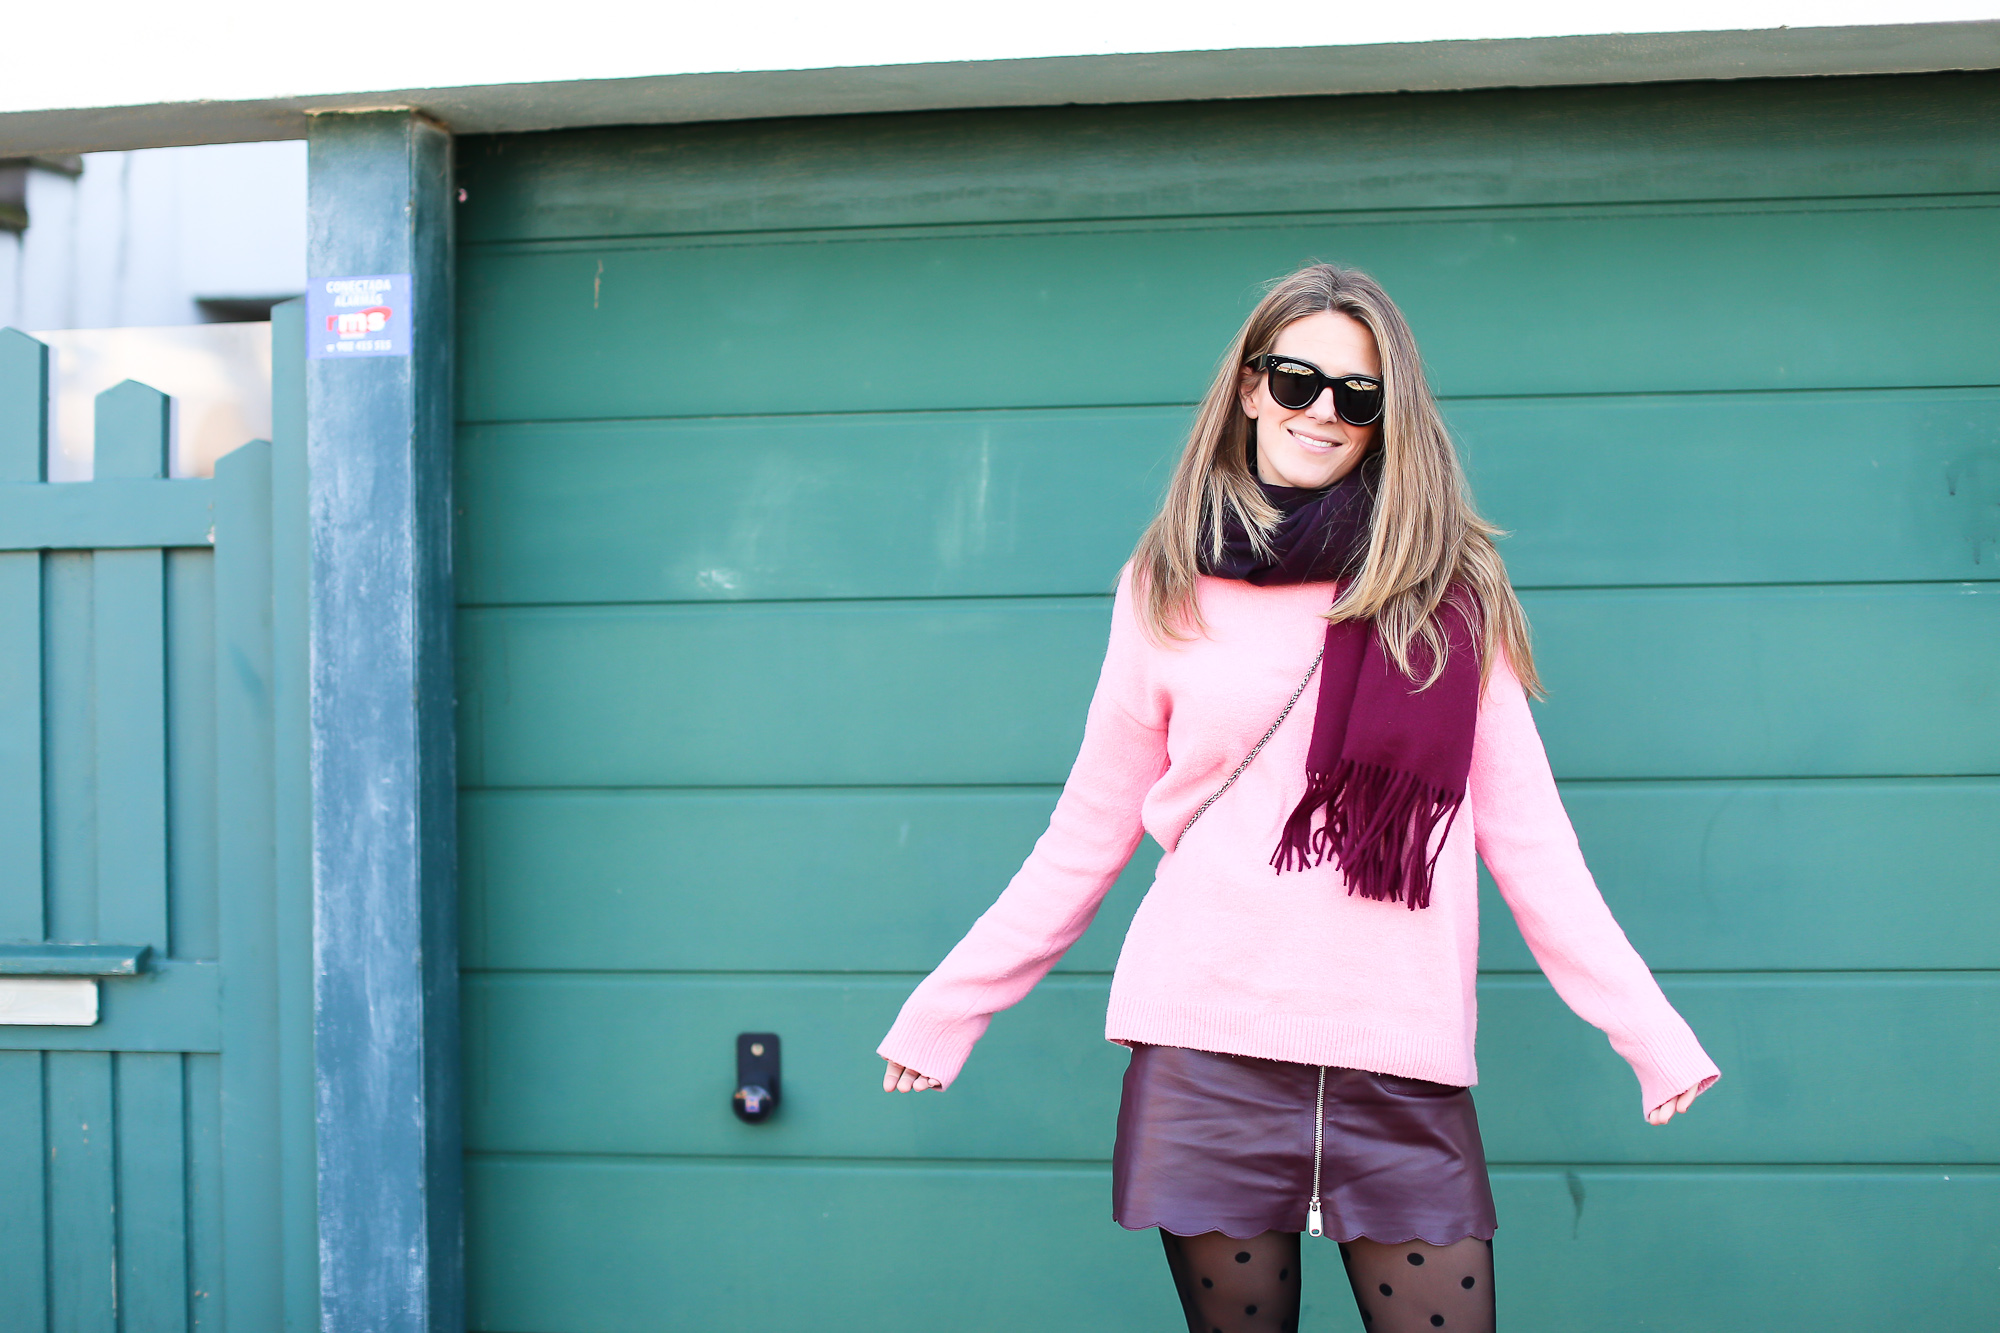 Clochet_streetstyle_fashionblogger_Max&Co_leatherminiskirt_andtherstories_pinksweater_celinesunglasses-8